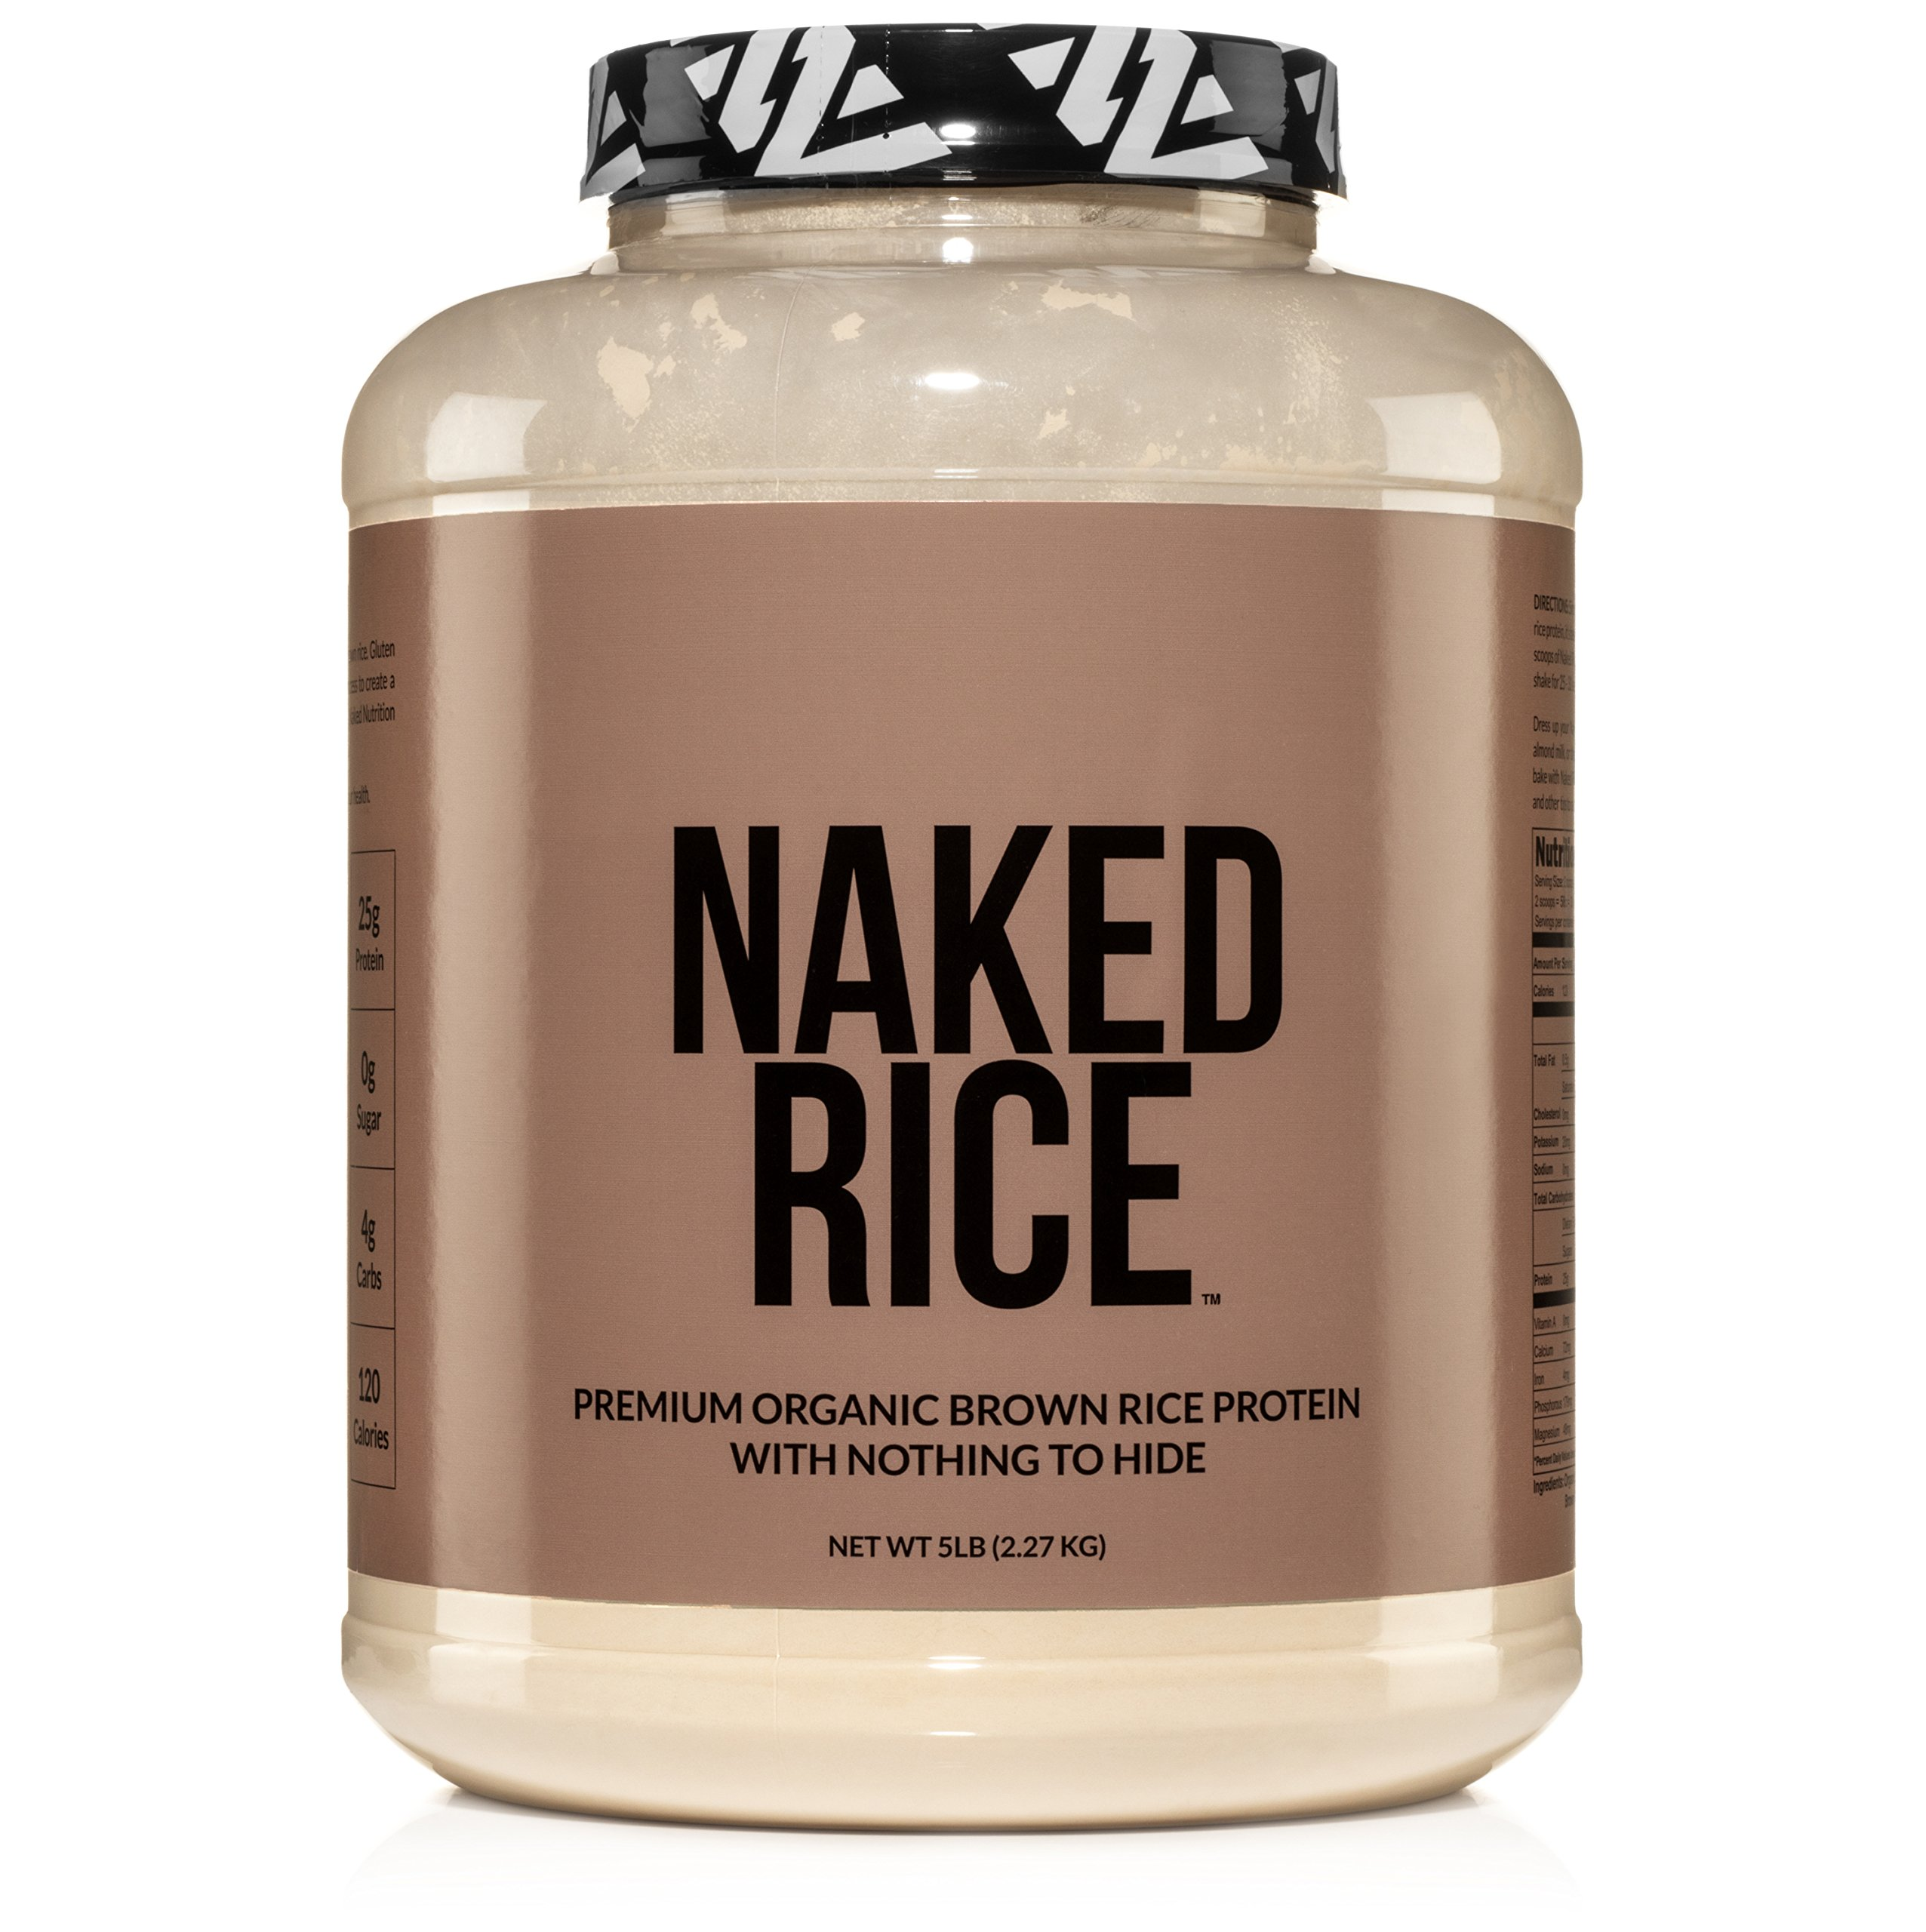 NAKED RICE - Organic Brown Rice Protein Powder – Vegan Protein Powder - 5lb Bulk, GMO Free, Gluten Free & Soy Free. Plant-Based Protein, No Artificial Ingredients - 76 Servings